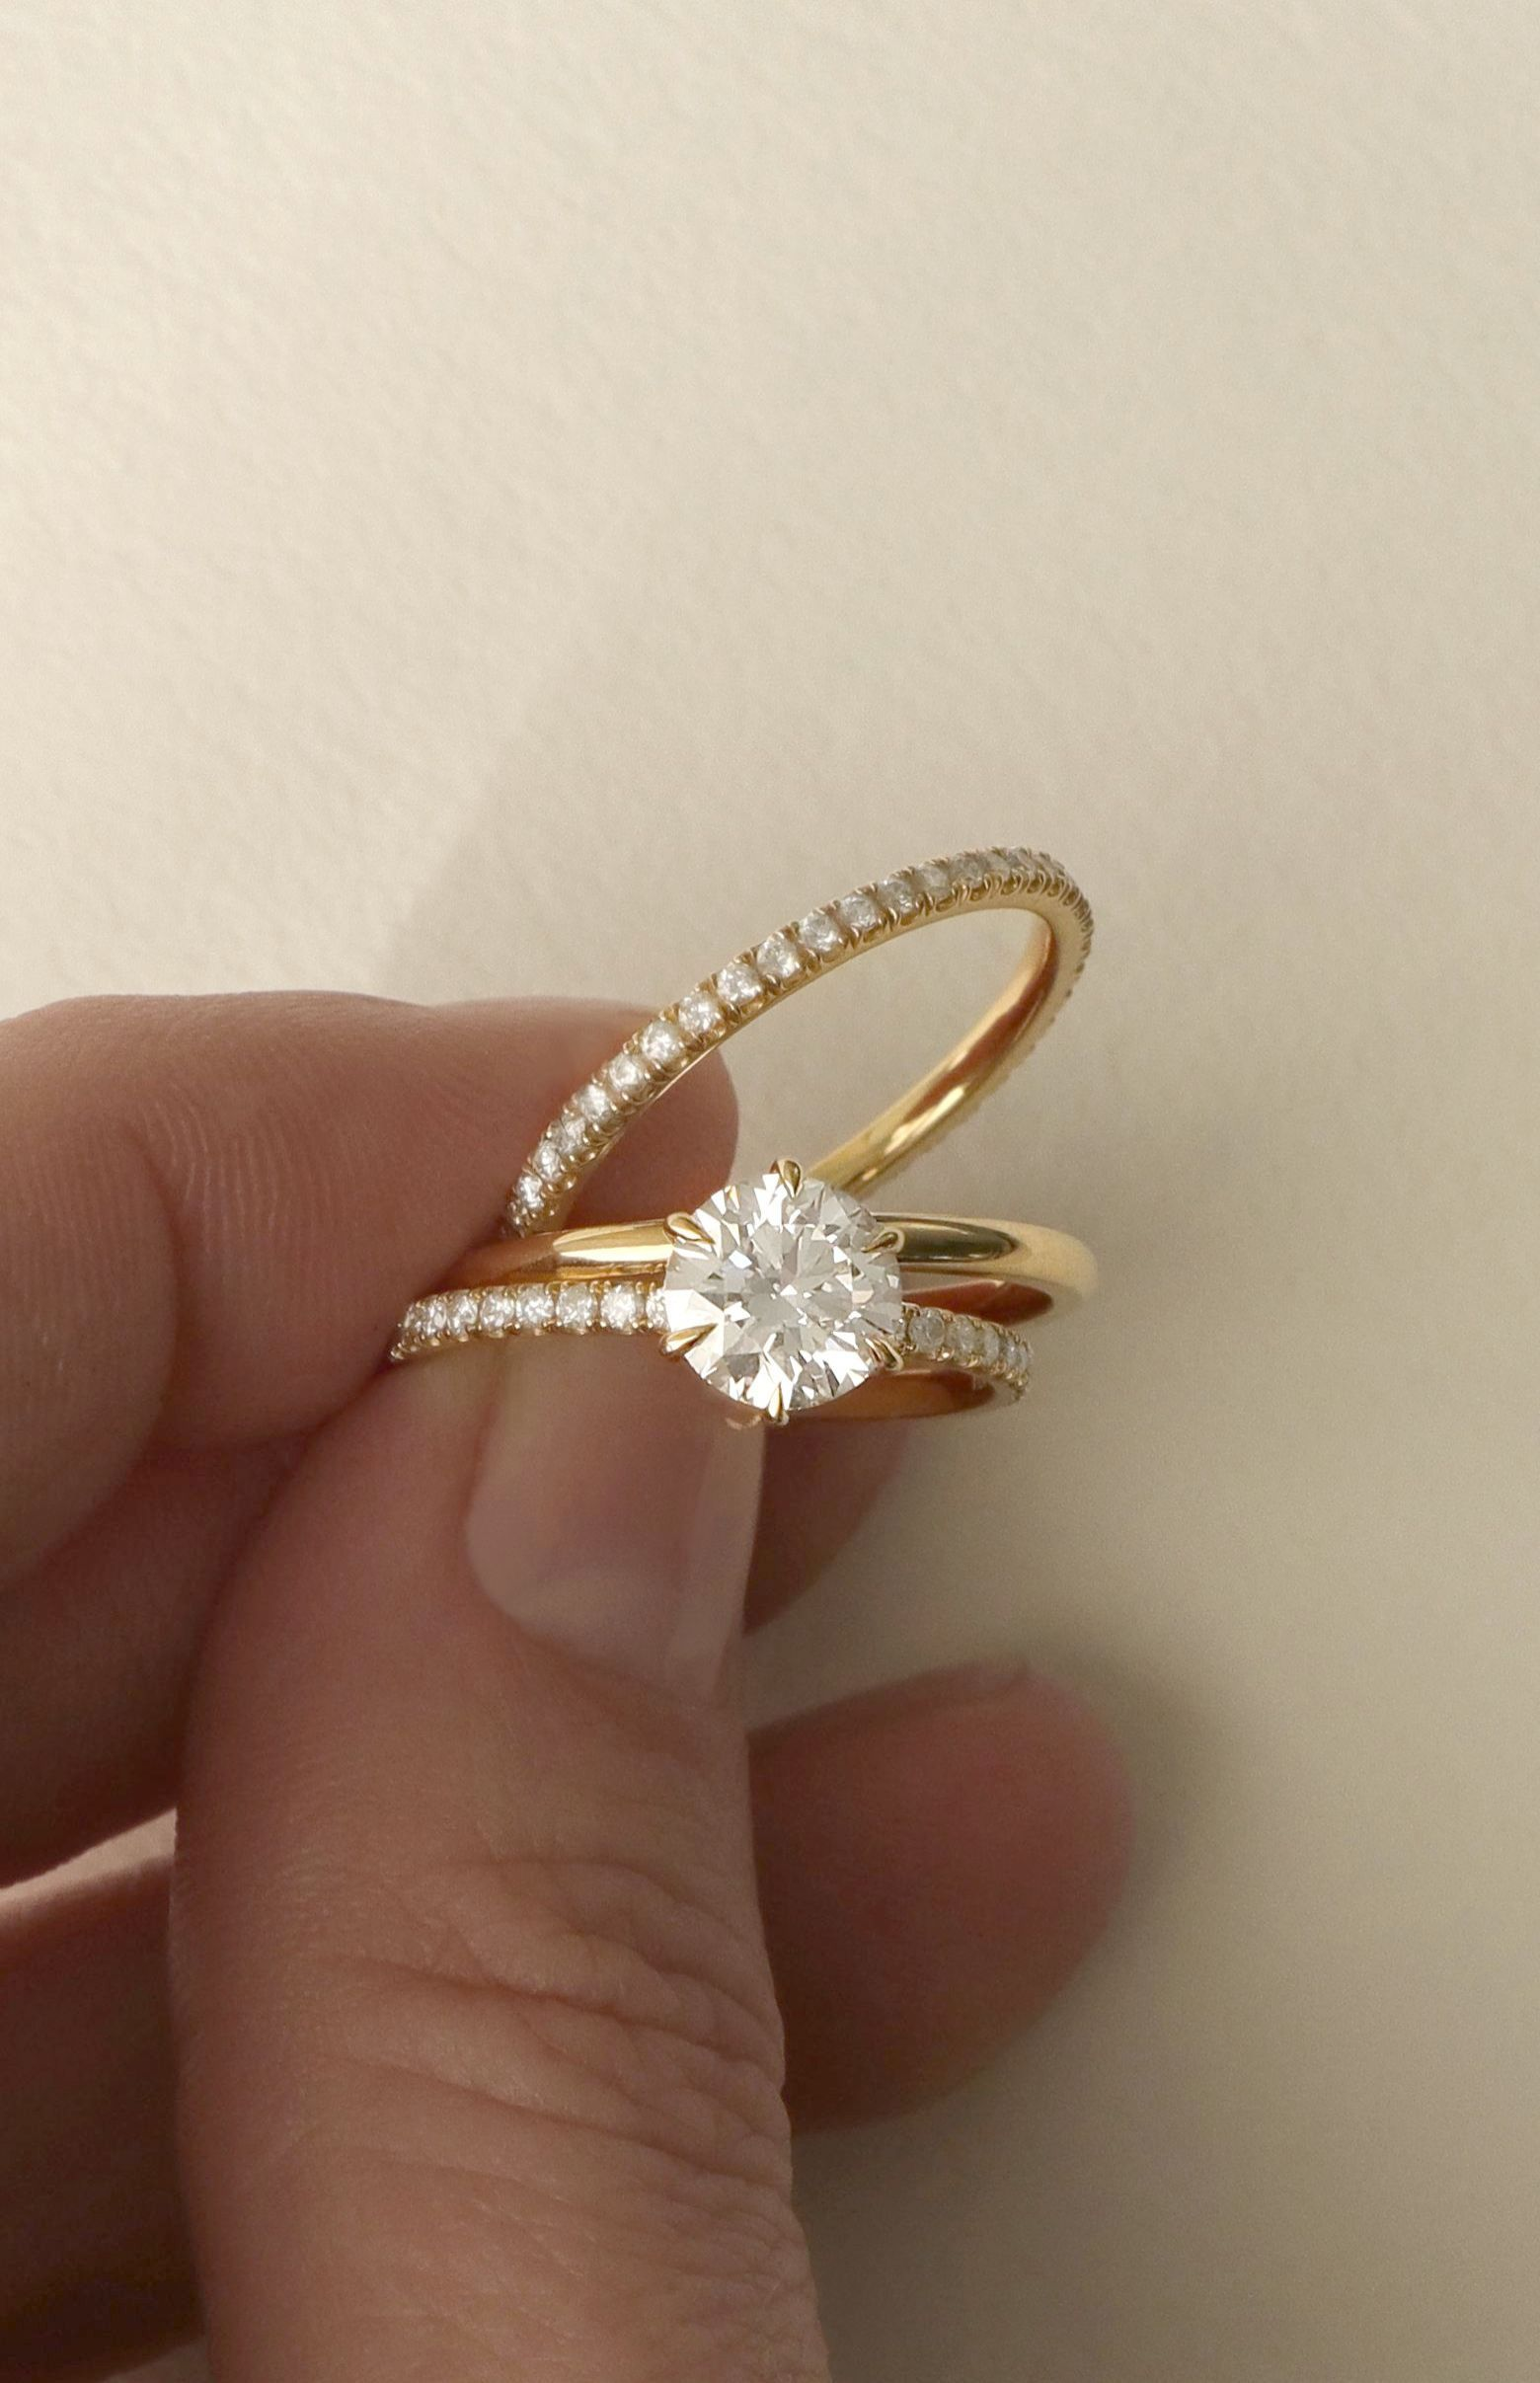 Diamond Solitaire Engagement Rings Ebay One Single Diamond Ring Wedding Ring Bands Engagement Rings Simple Engagement Rings